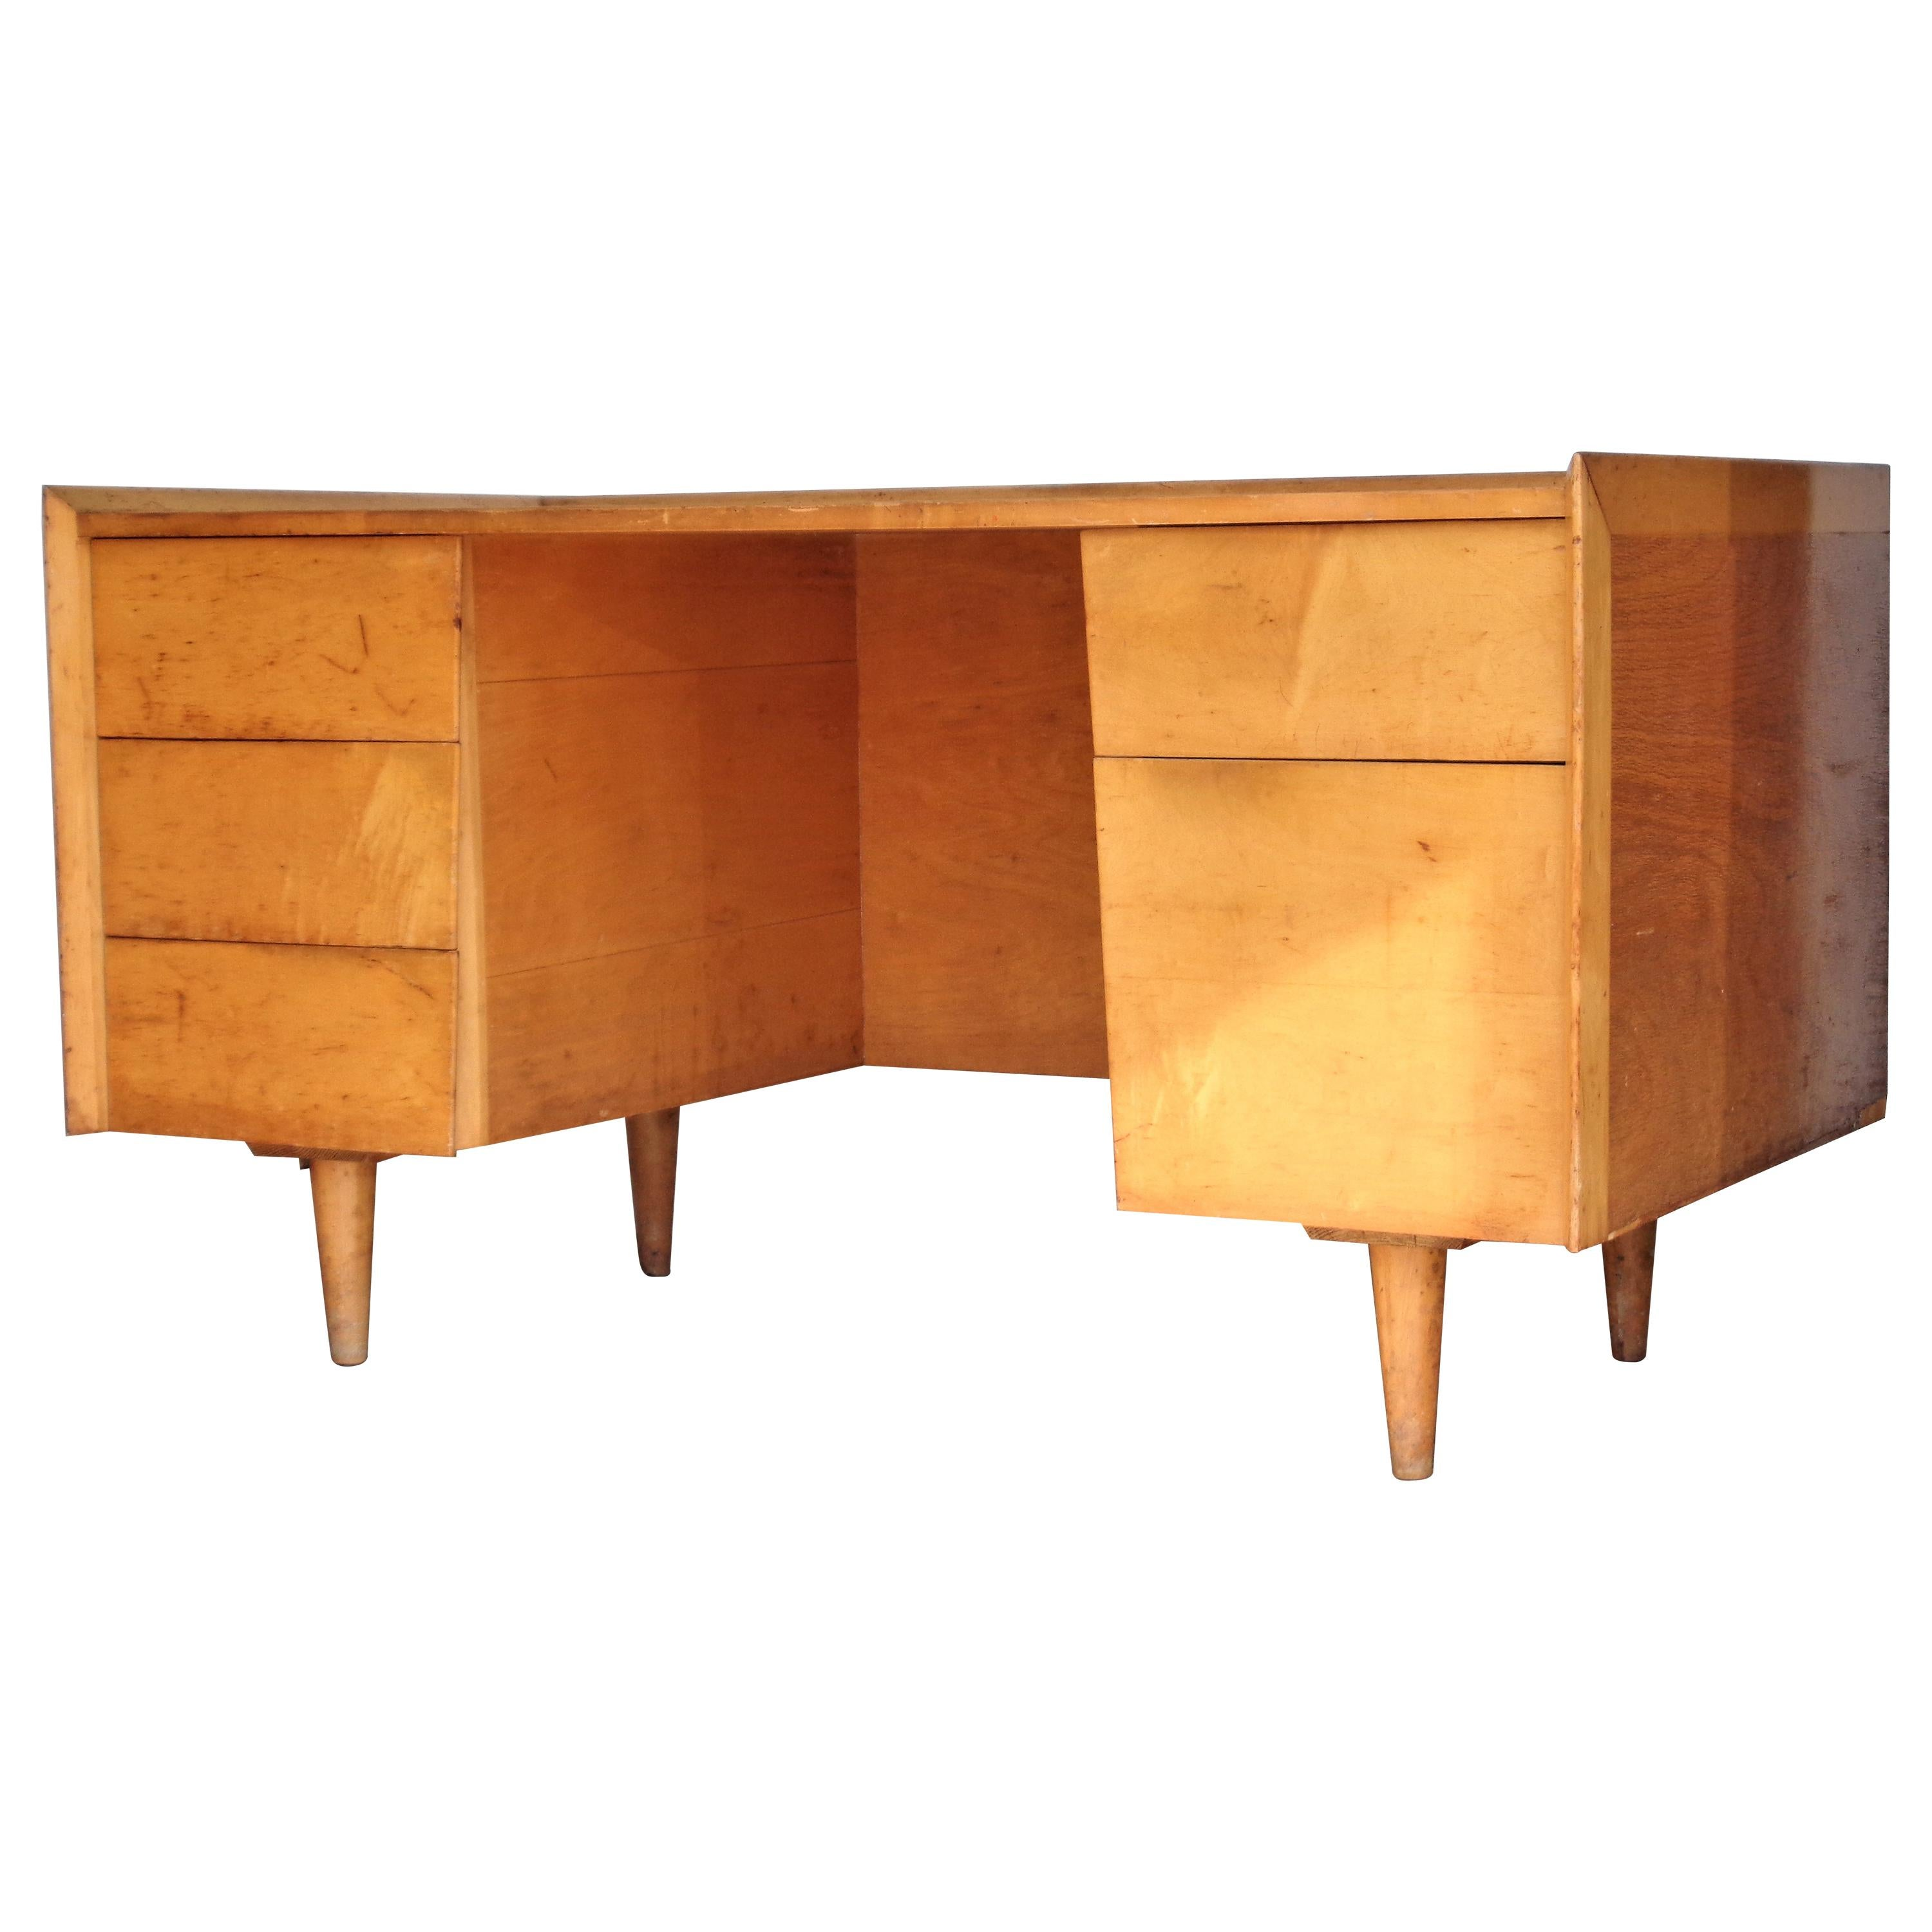 Architectural Modernist Desk in the Style of Alvar Aalto